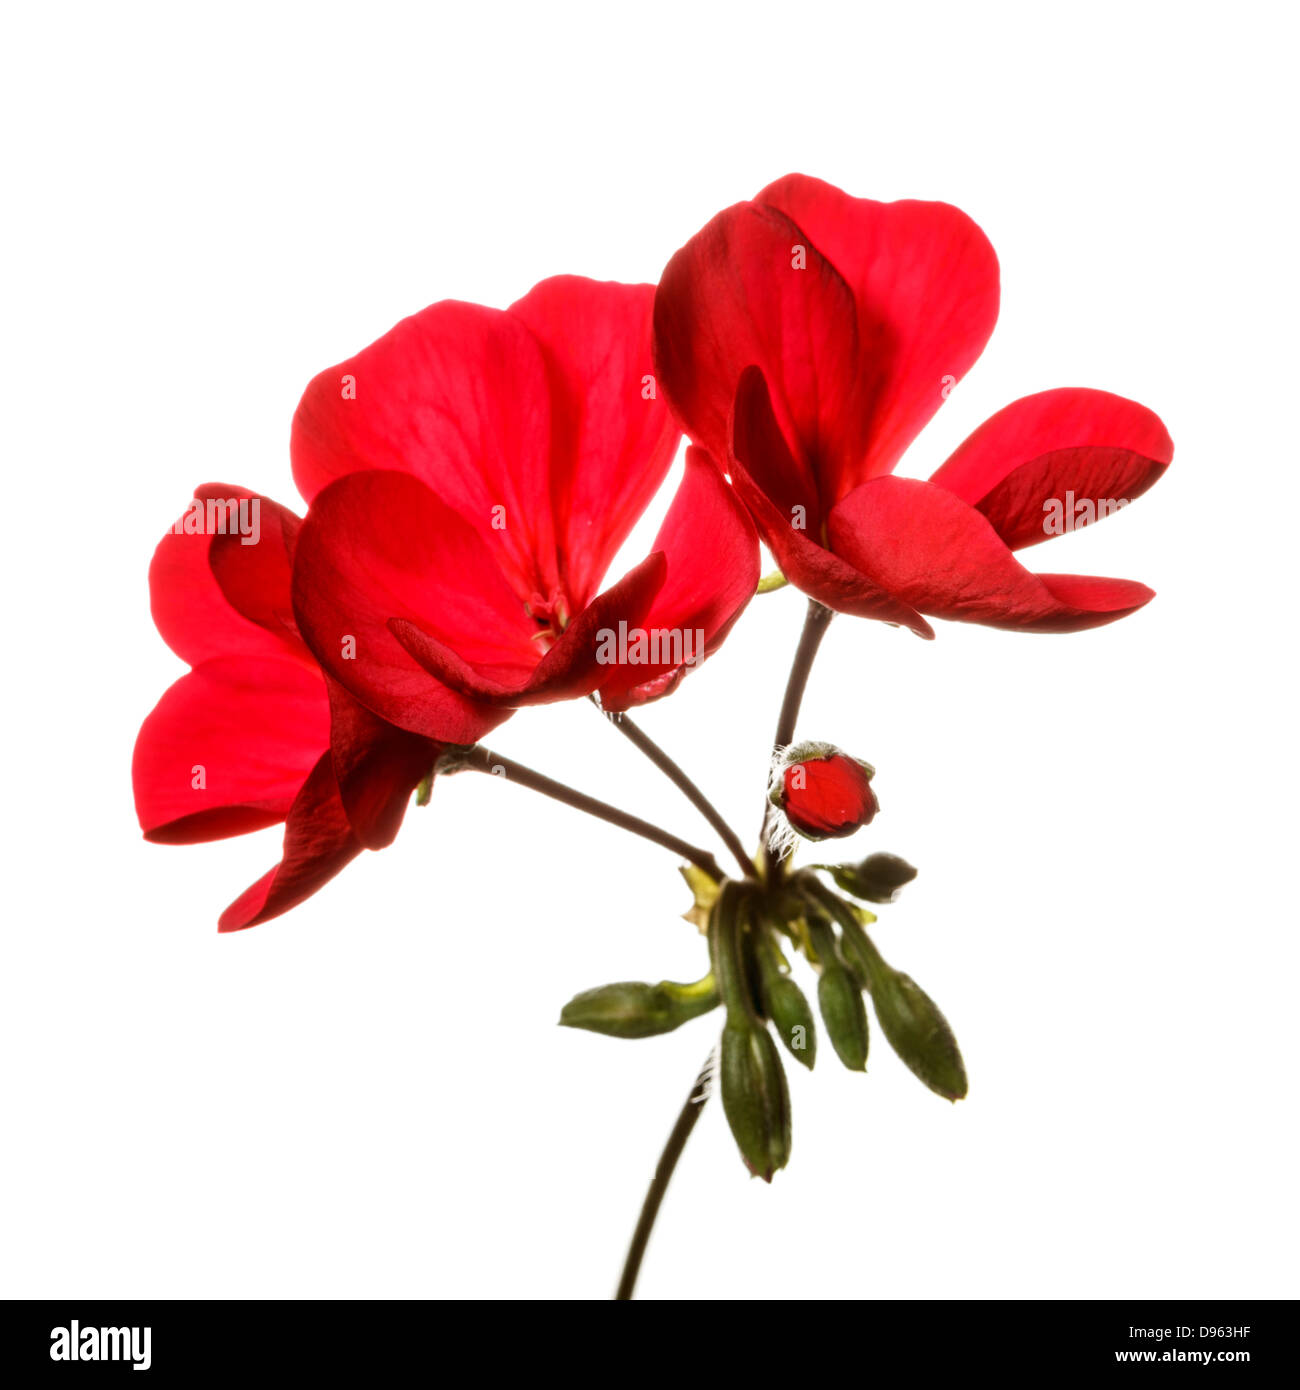 Red geranium flower set against pure white background - Stock Image